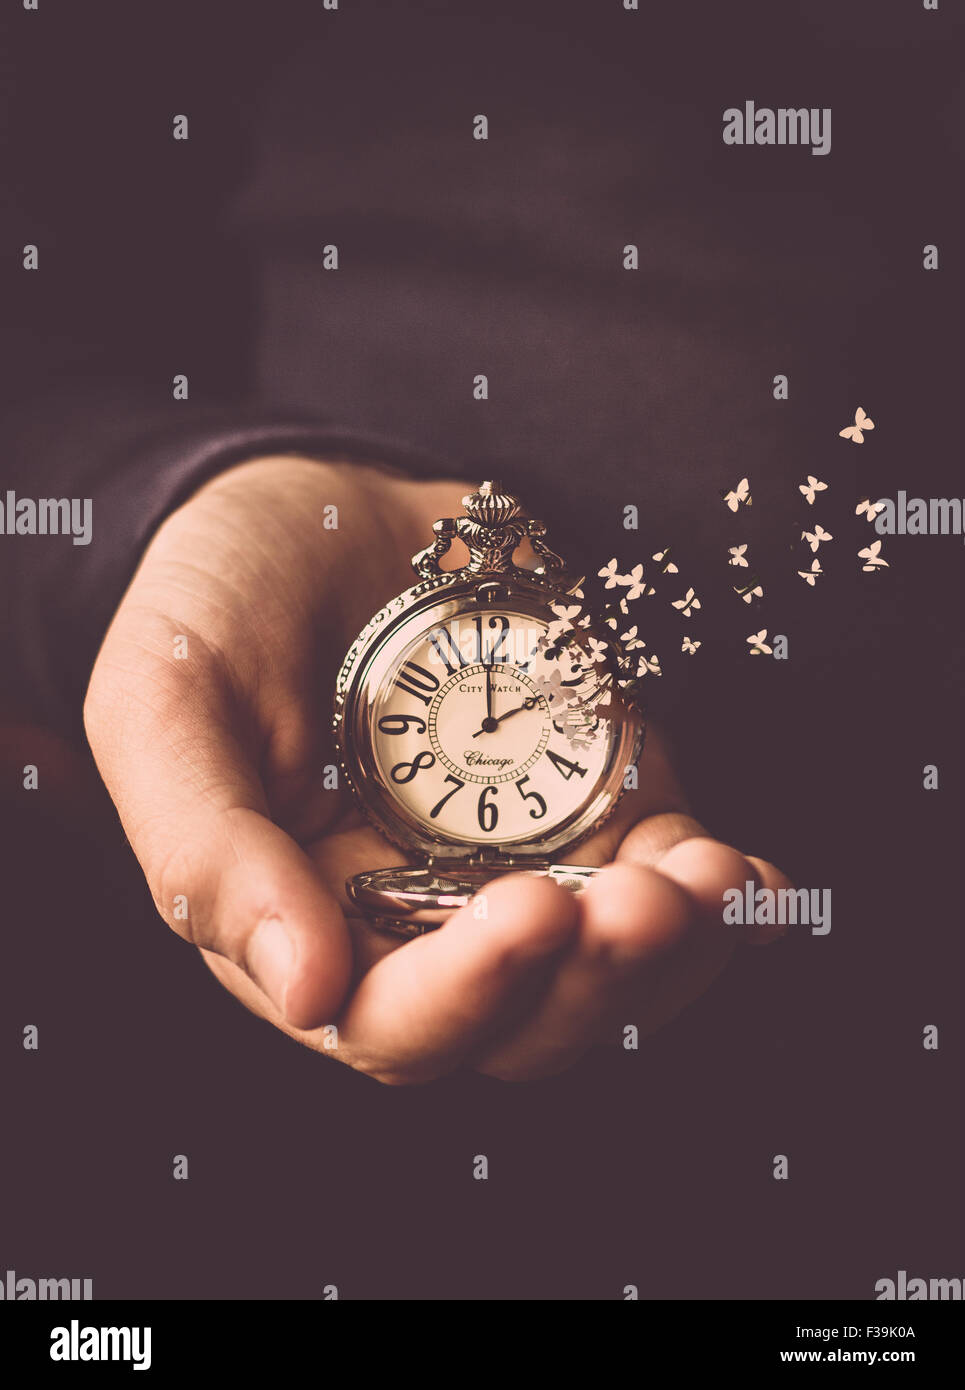 Man holding a watch in his hand with time flying off the clock face like butterflies Stock Photo